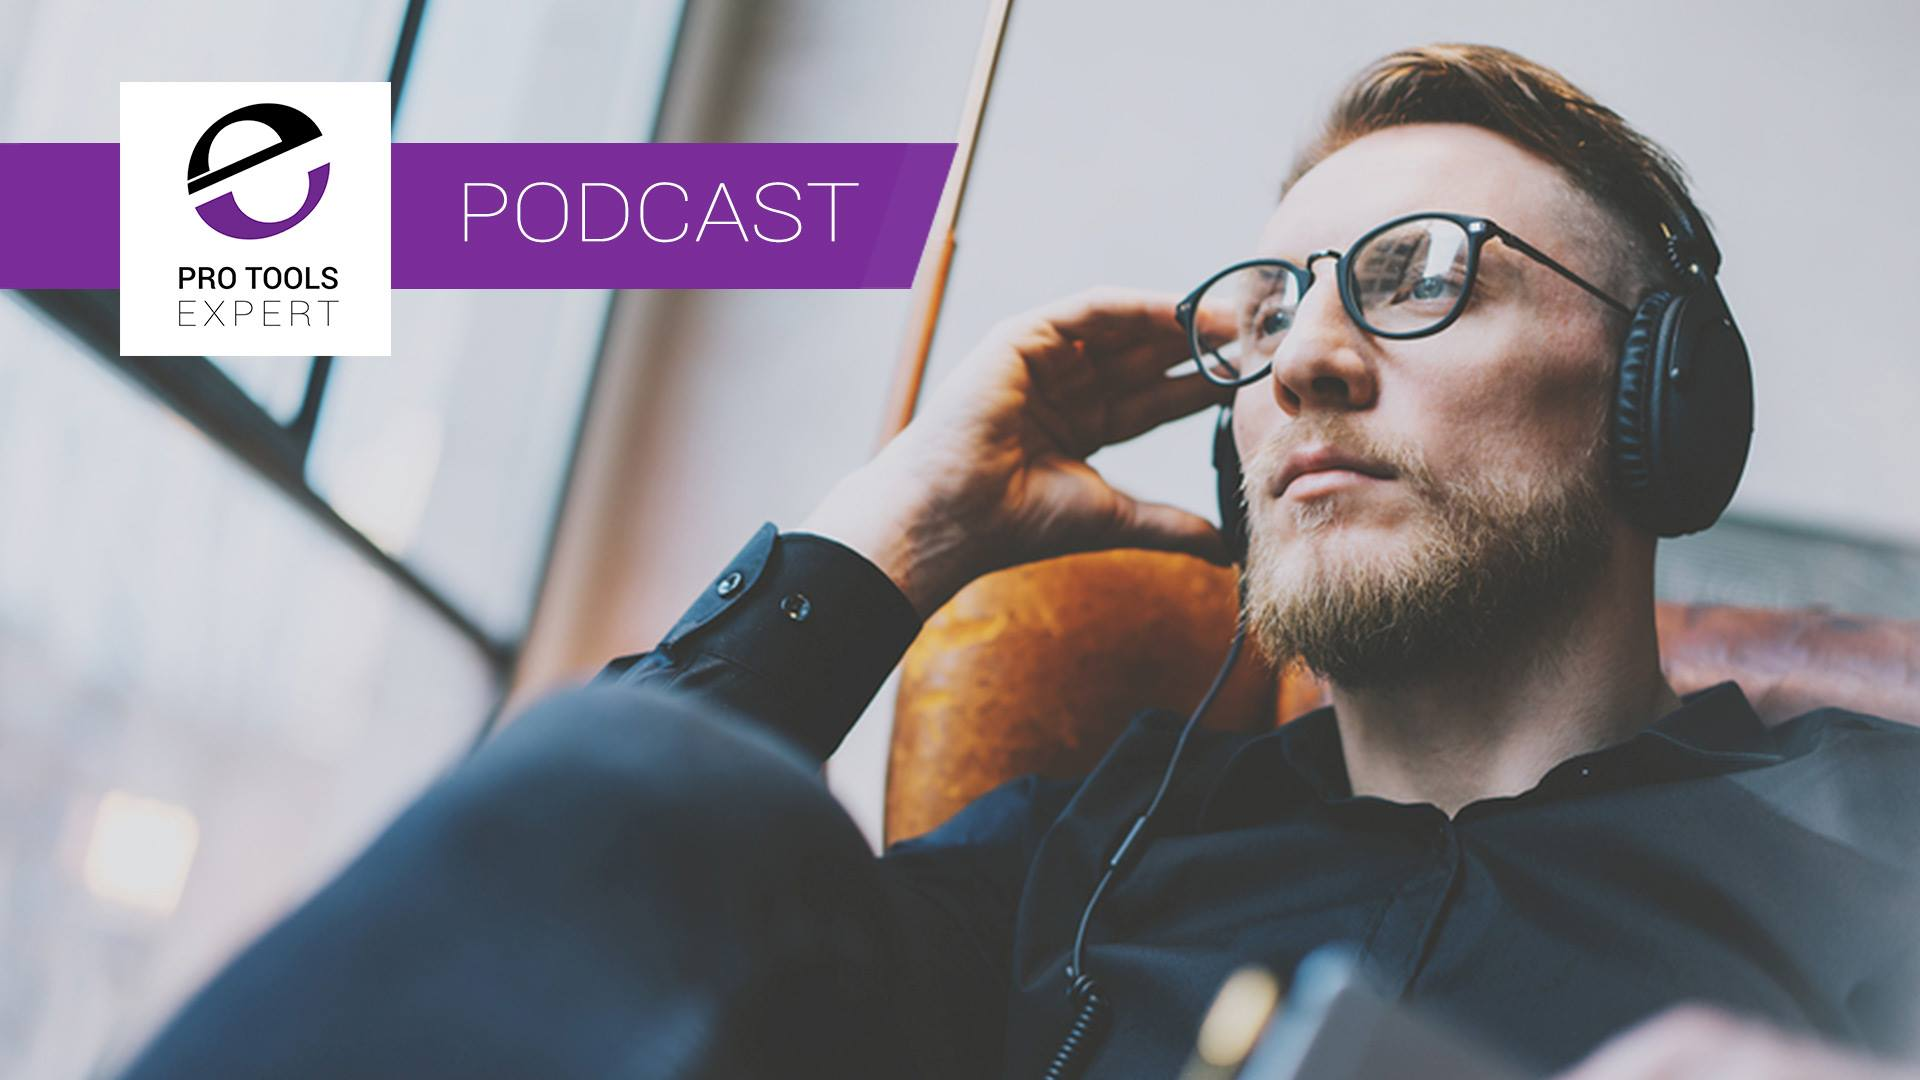 Pro Tools Expert Podcast Episode 271